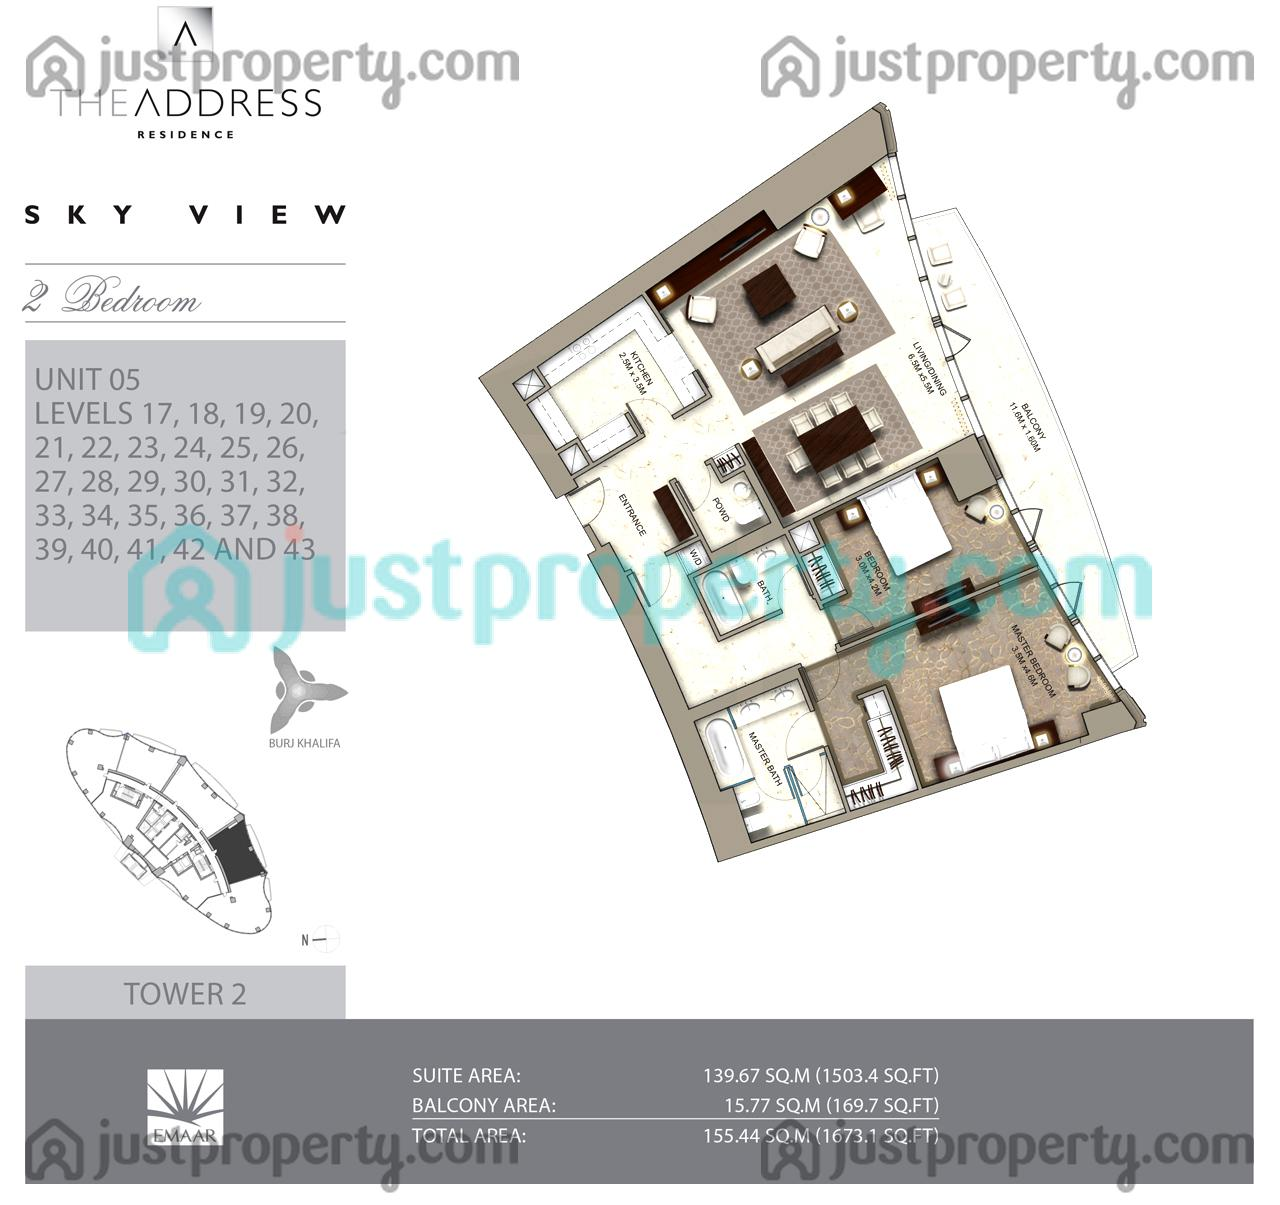 Sky view tower 2 floor plans for Floor plans by address